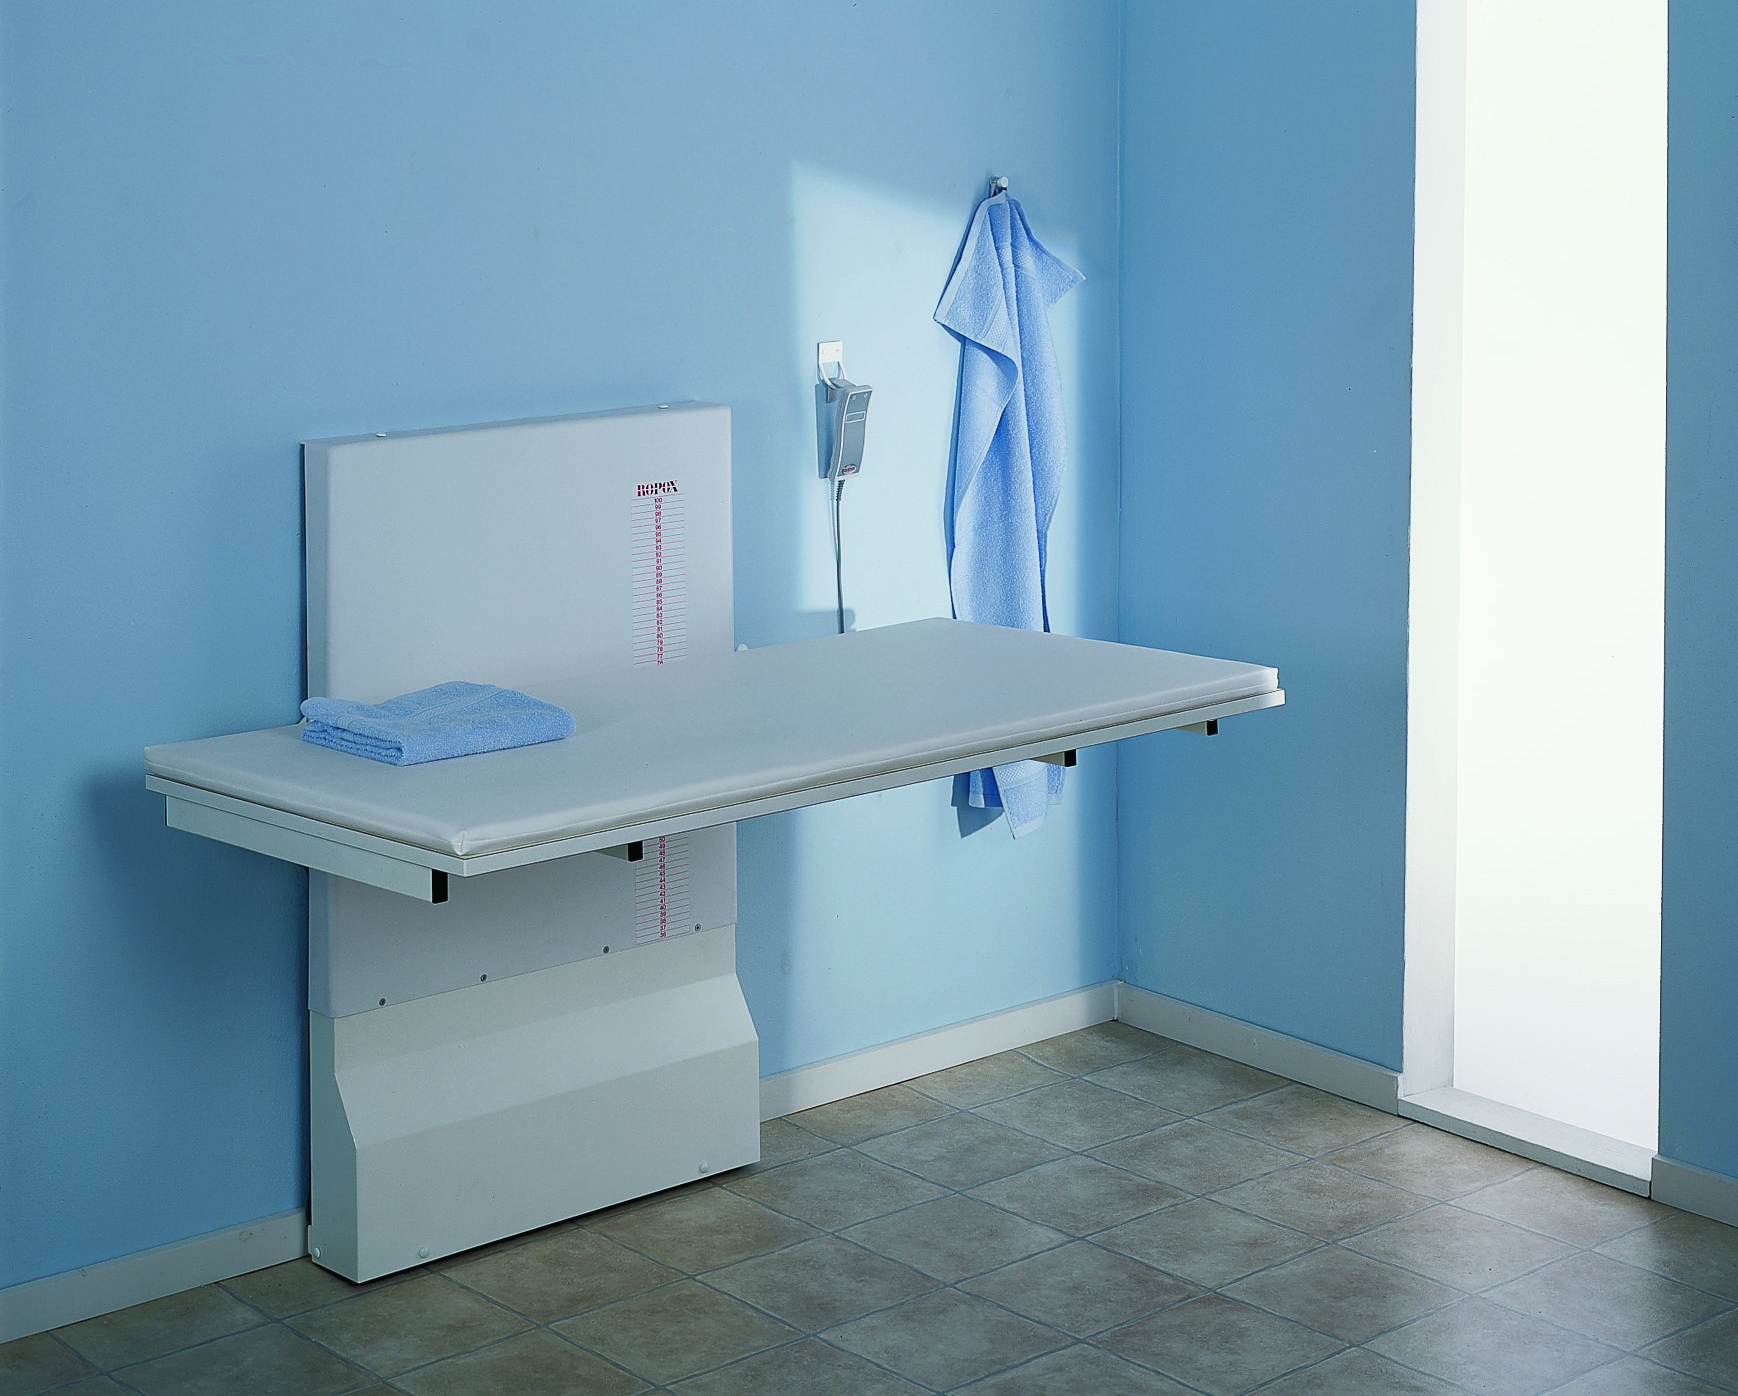 - Ropox Vario - Nursing Benches And Tables.co.uk